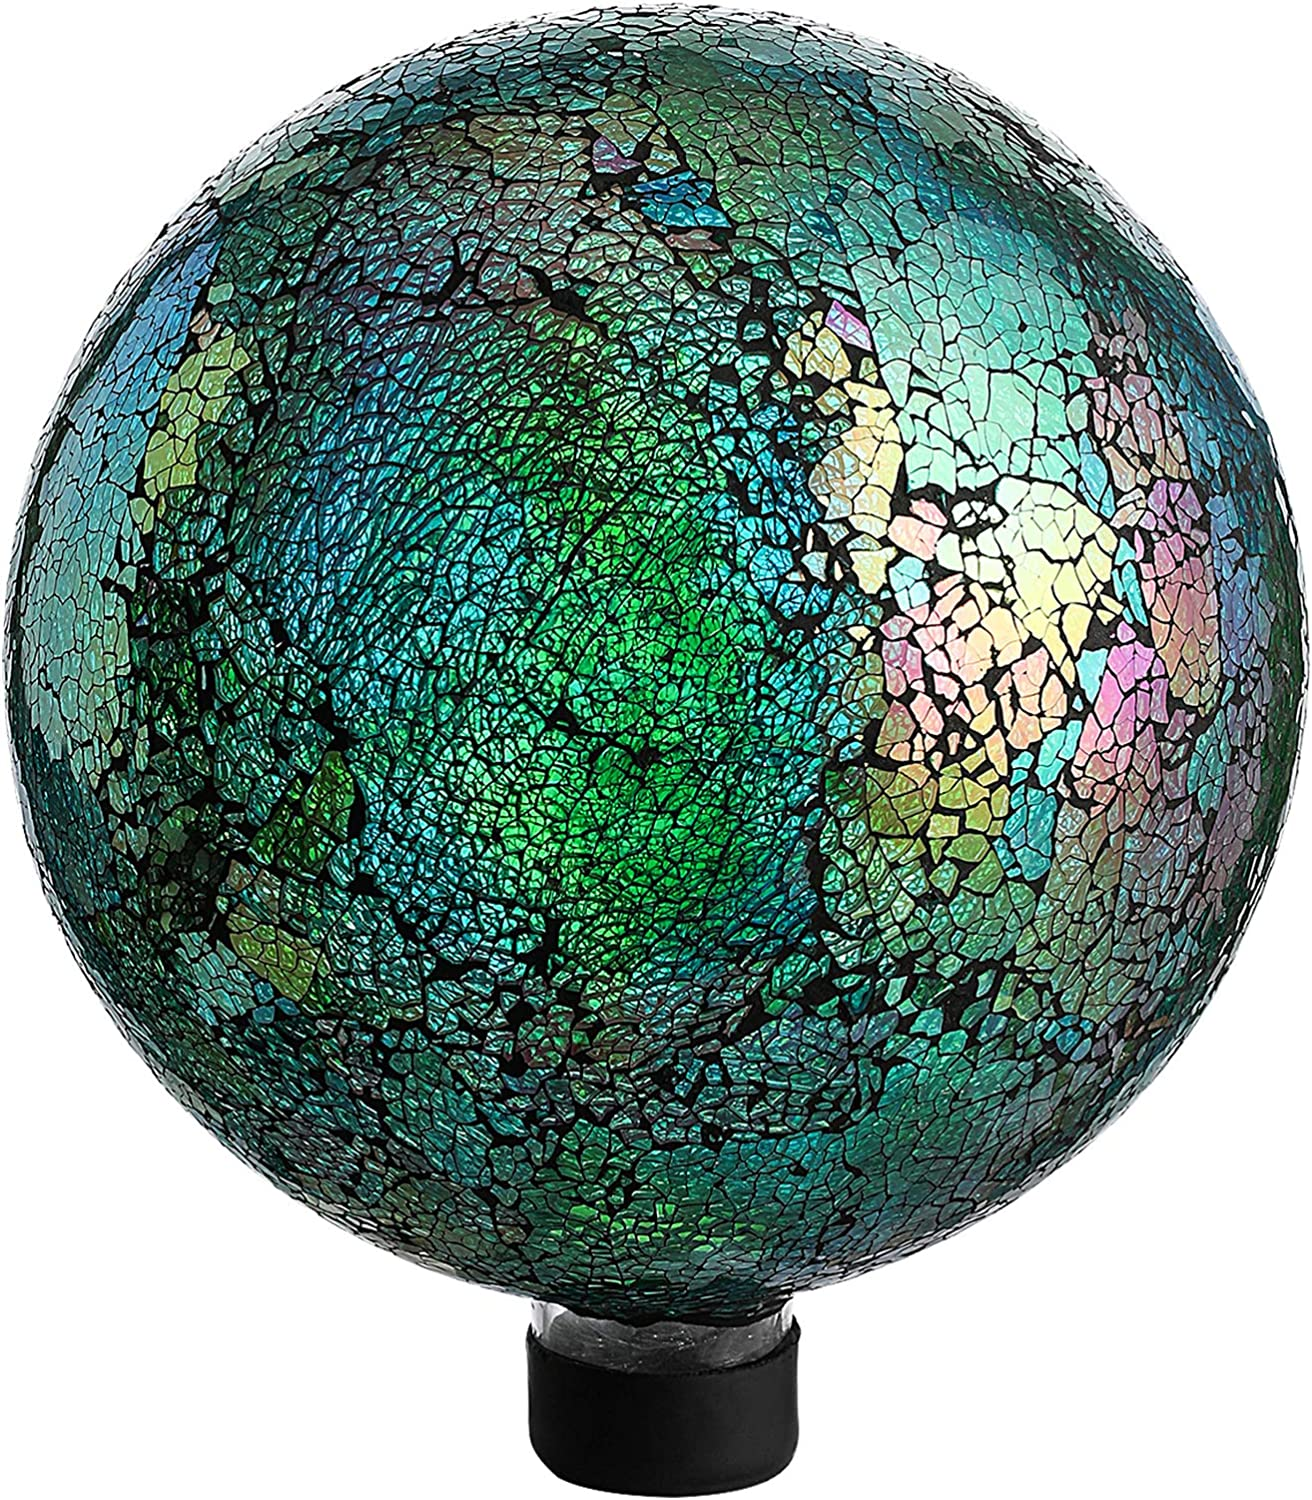 10 Inch Mosaic Colorful Gazing Ball,Iridescent Crackled Glass Mosaic Globe for Yard & Garden (Blue)